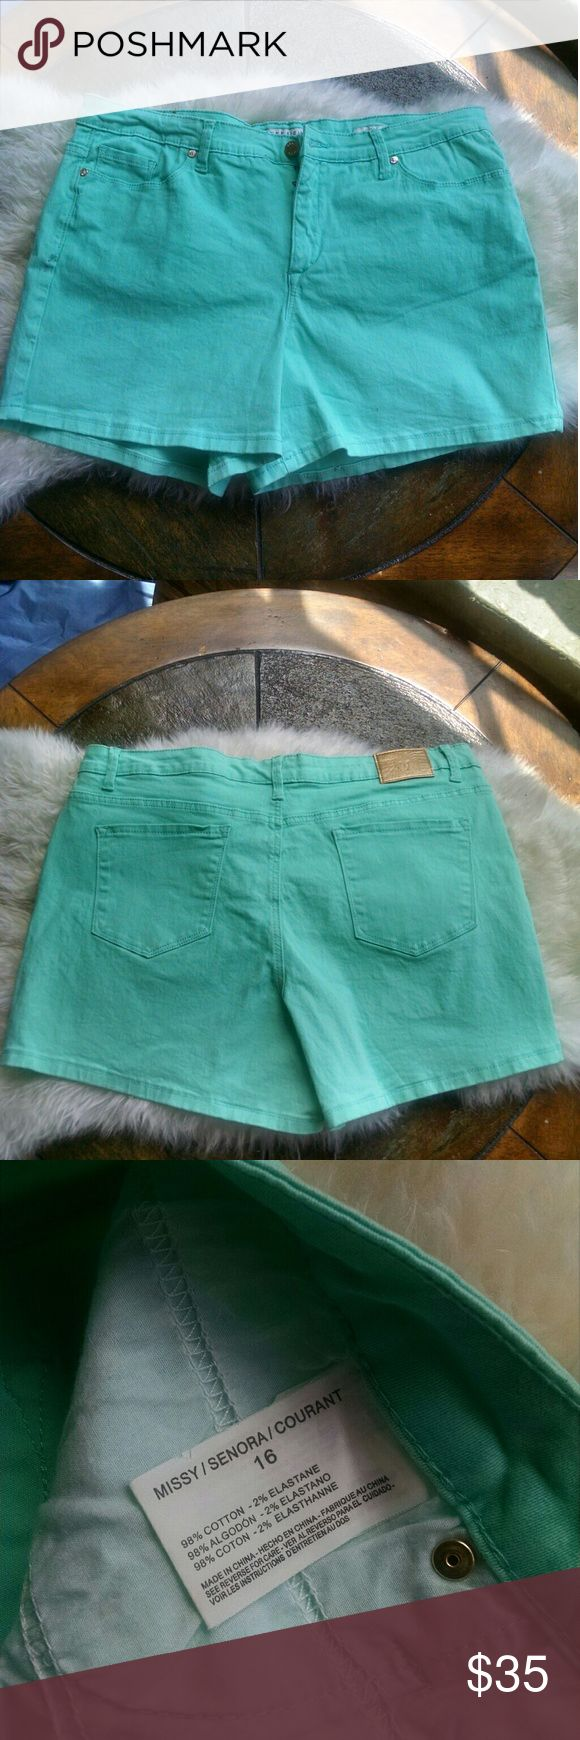 Mint Green Shorts by Anne Klein, 16 Adorable mint green Anne Klein shorts with gold accents. Stretch denim like material. Anne Klein Shorts